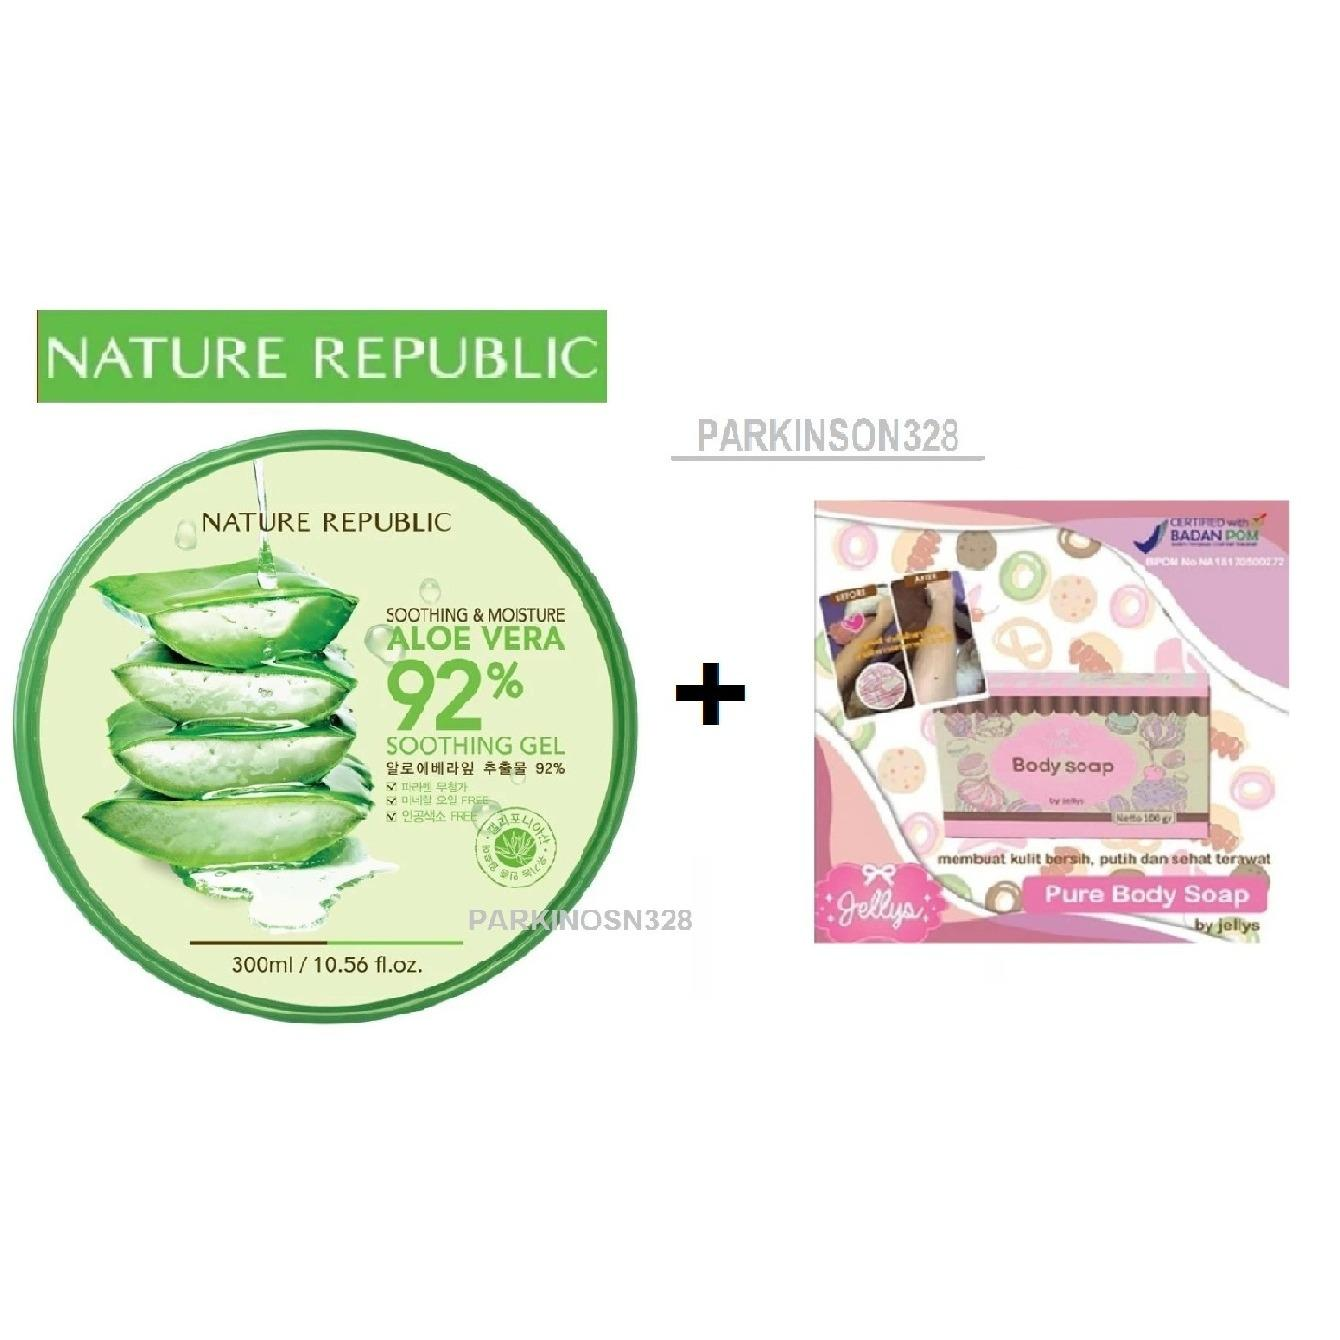 Buy Sell Cheapest Pure Body Soap Best Quality Product Deals Bpom By Jellys Original Nature Republic Korea Soothing Moisture Aloe Vera 92 Gel 300ml